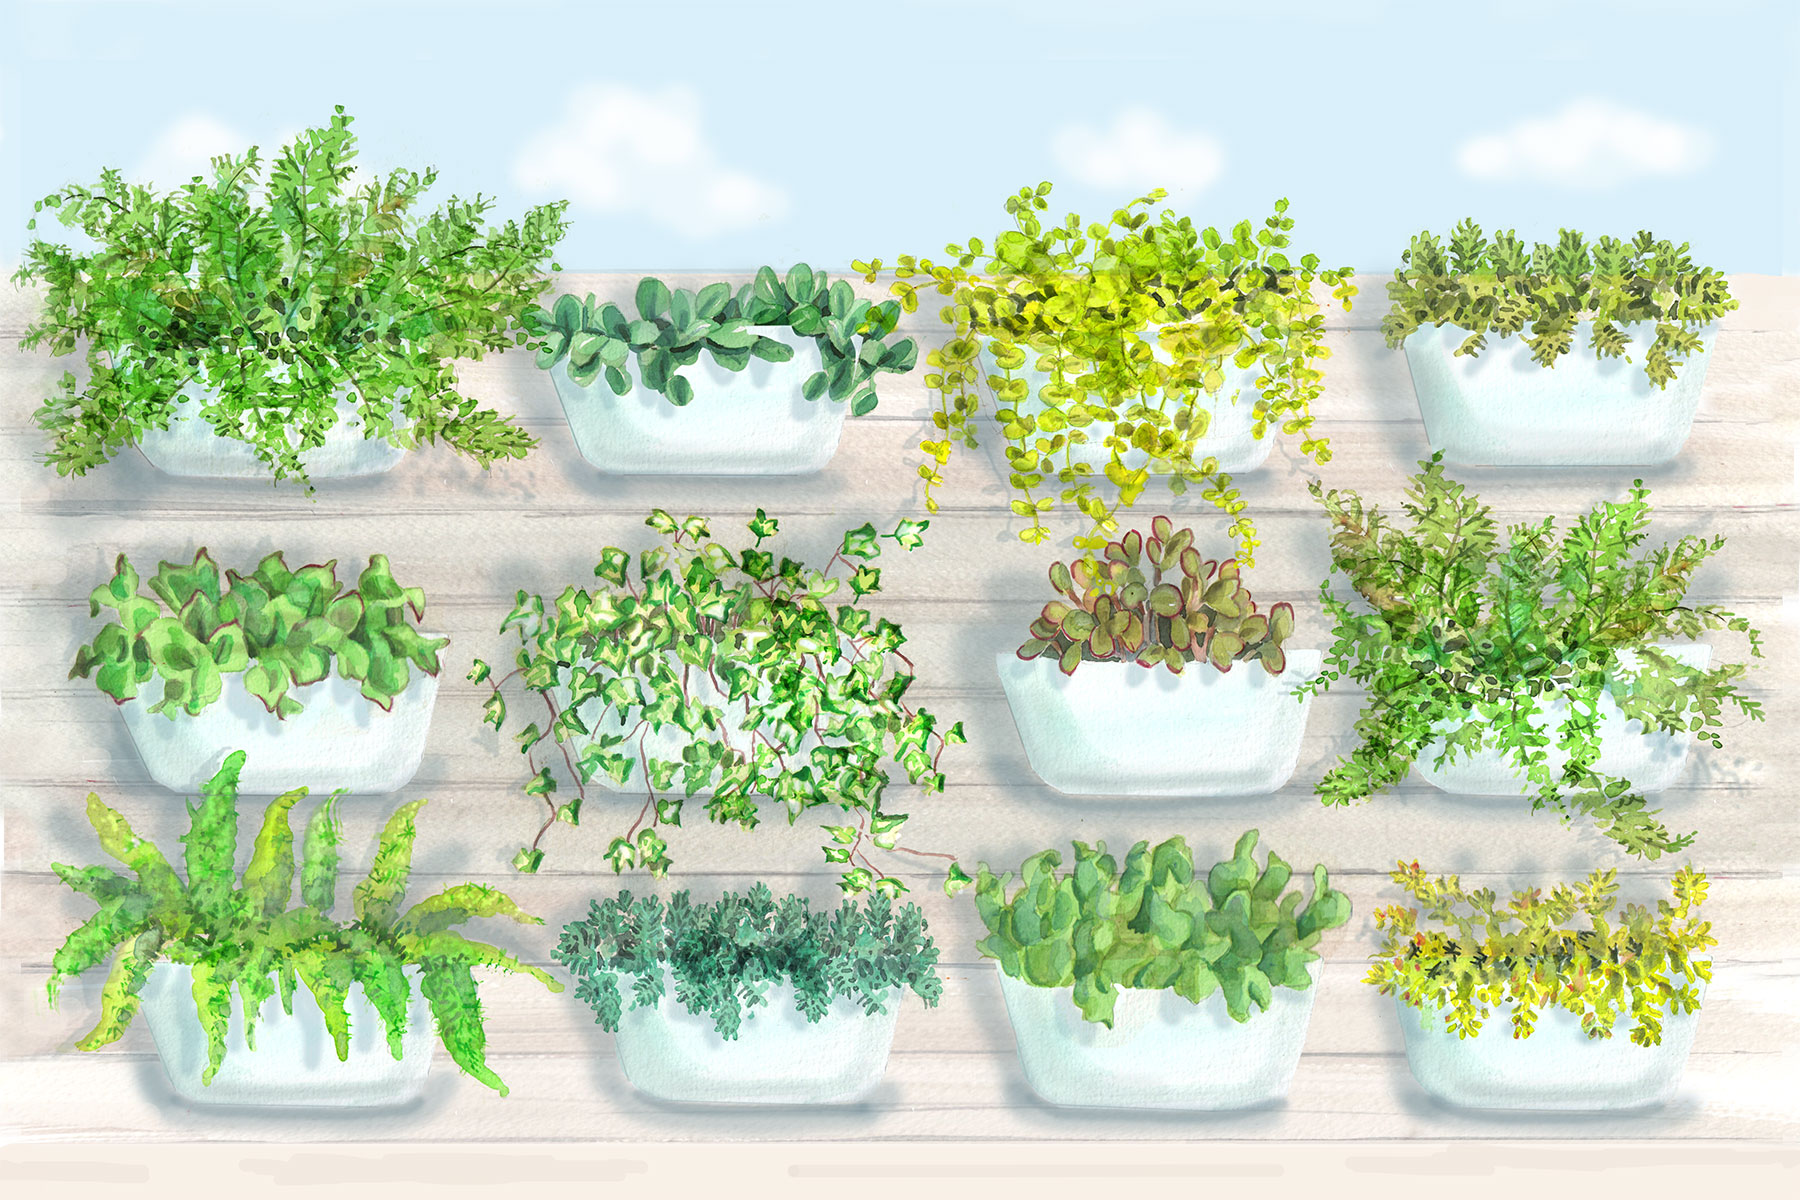 Container Garden Ideas: 4 Container Garden Ideas That Are Fail-Proof